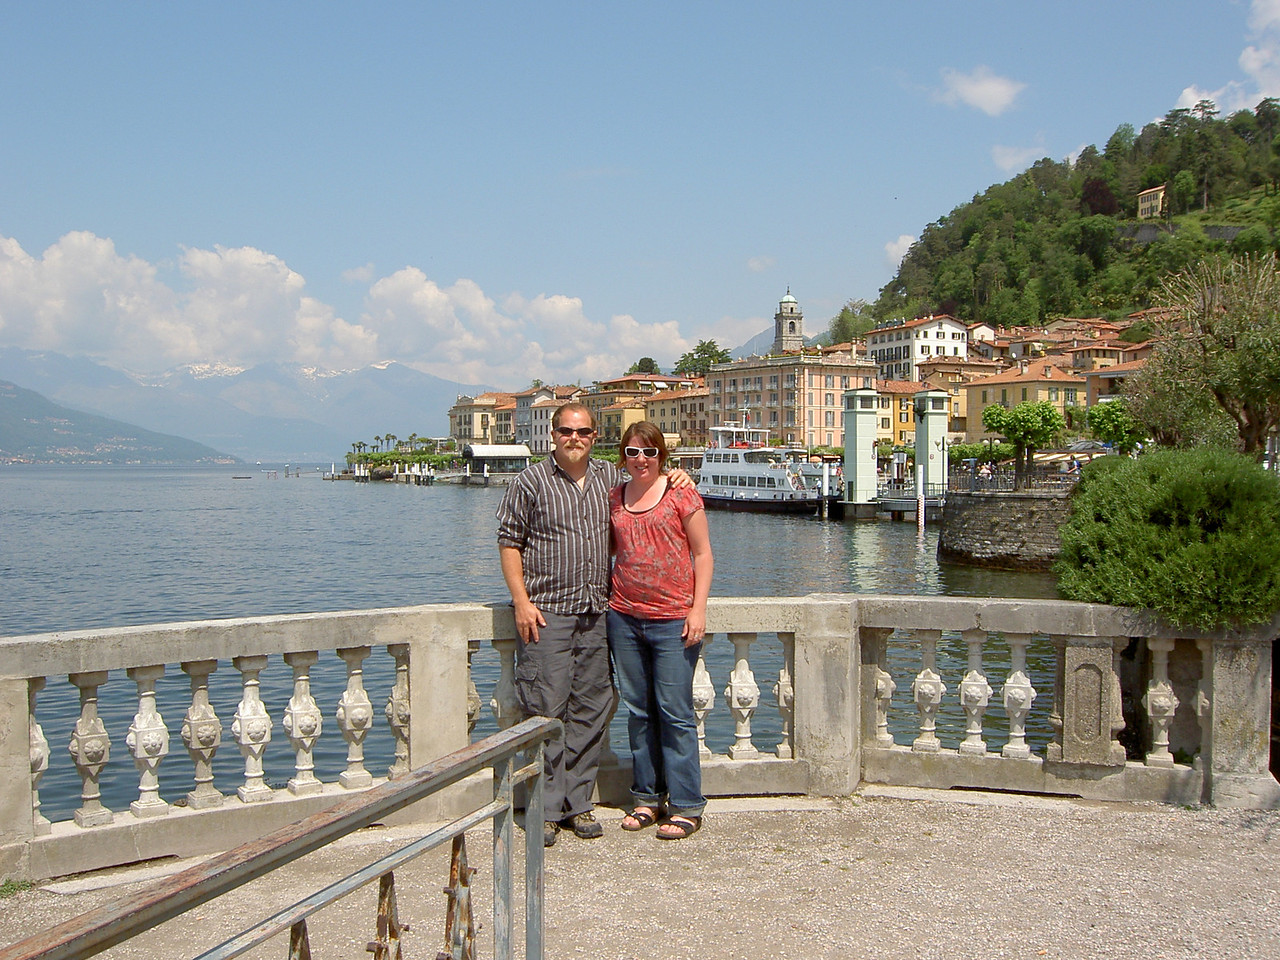 Bellagio, on Lake Como